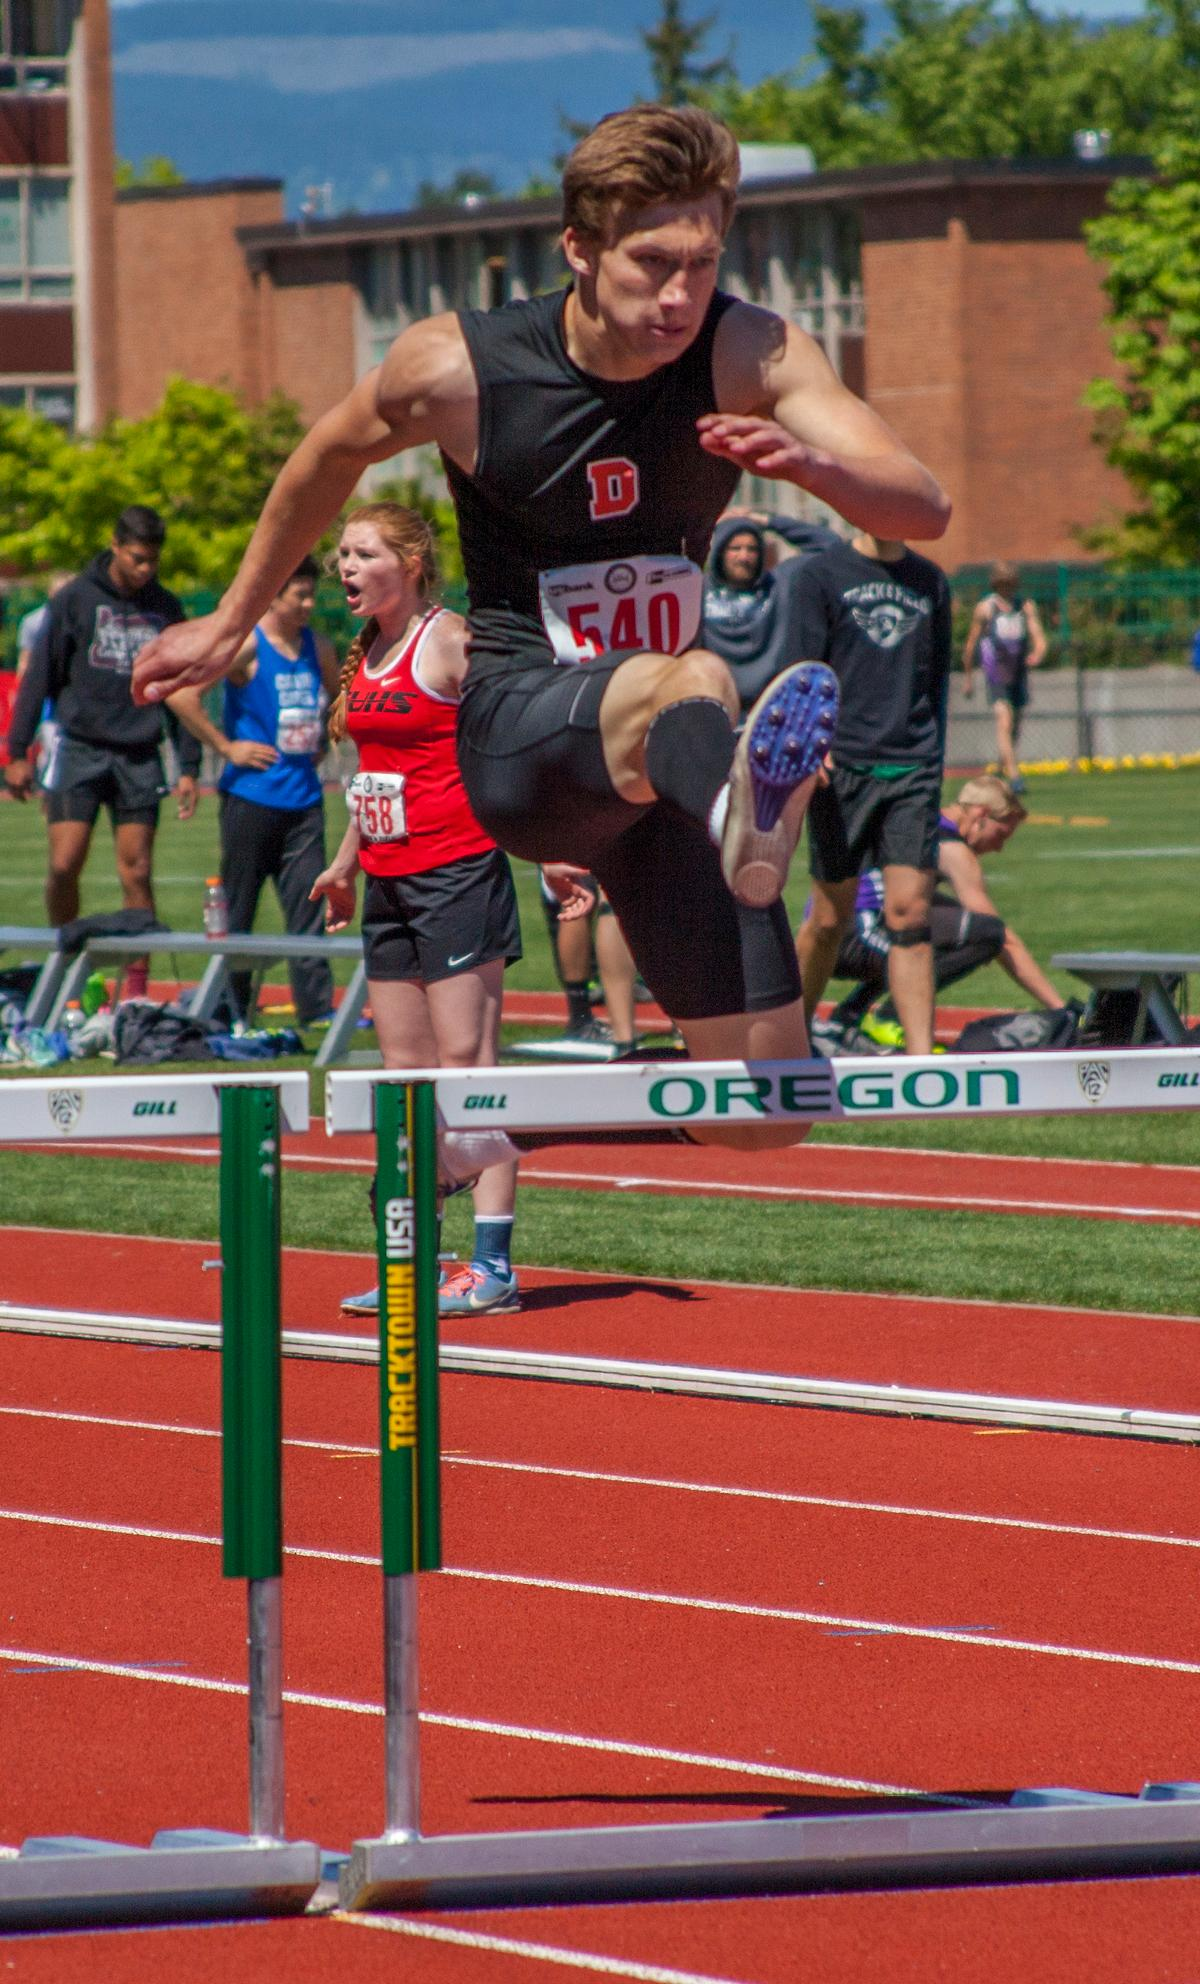 Jacob Deming from Dallas High School wins the Boys 300 Meter Hurdles 5A Prelims event with the time of 39.62 at the OSAA Track and Field State Championships at Hayward Field. Photo by Vannie Cooper, Oregon News Lab